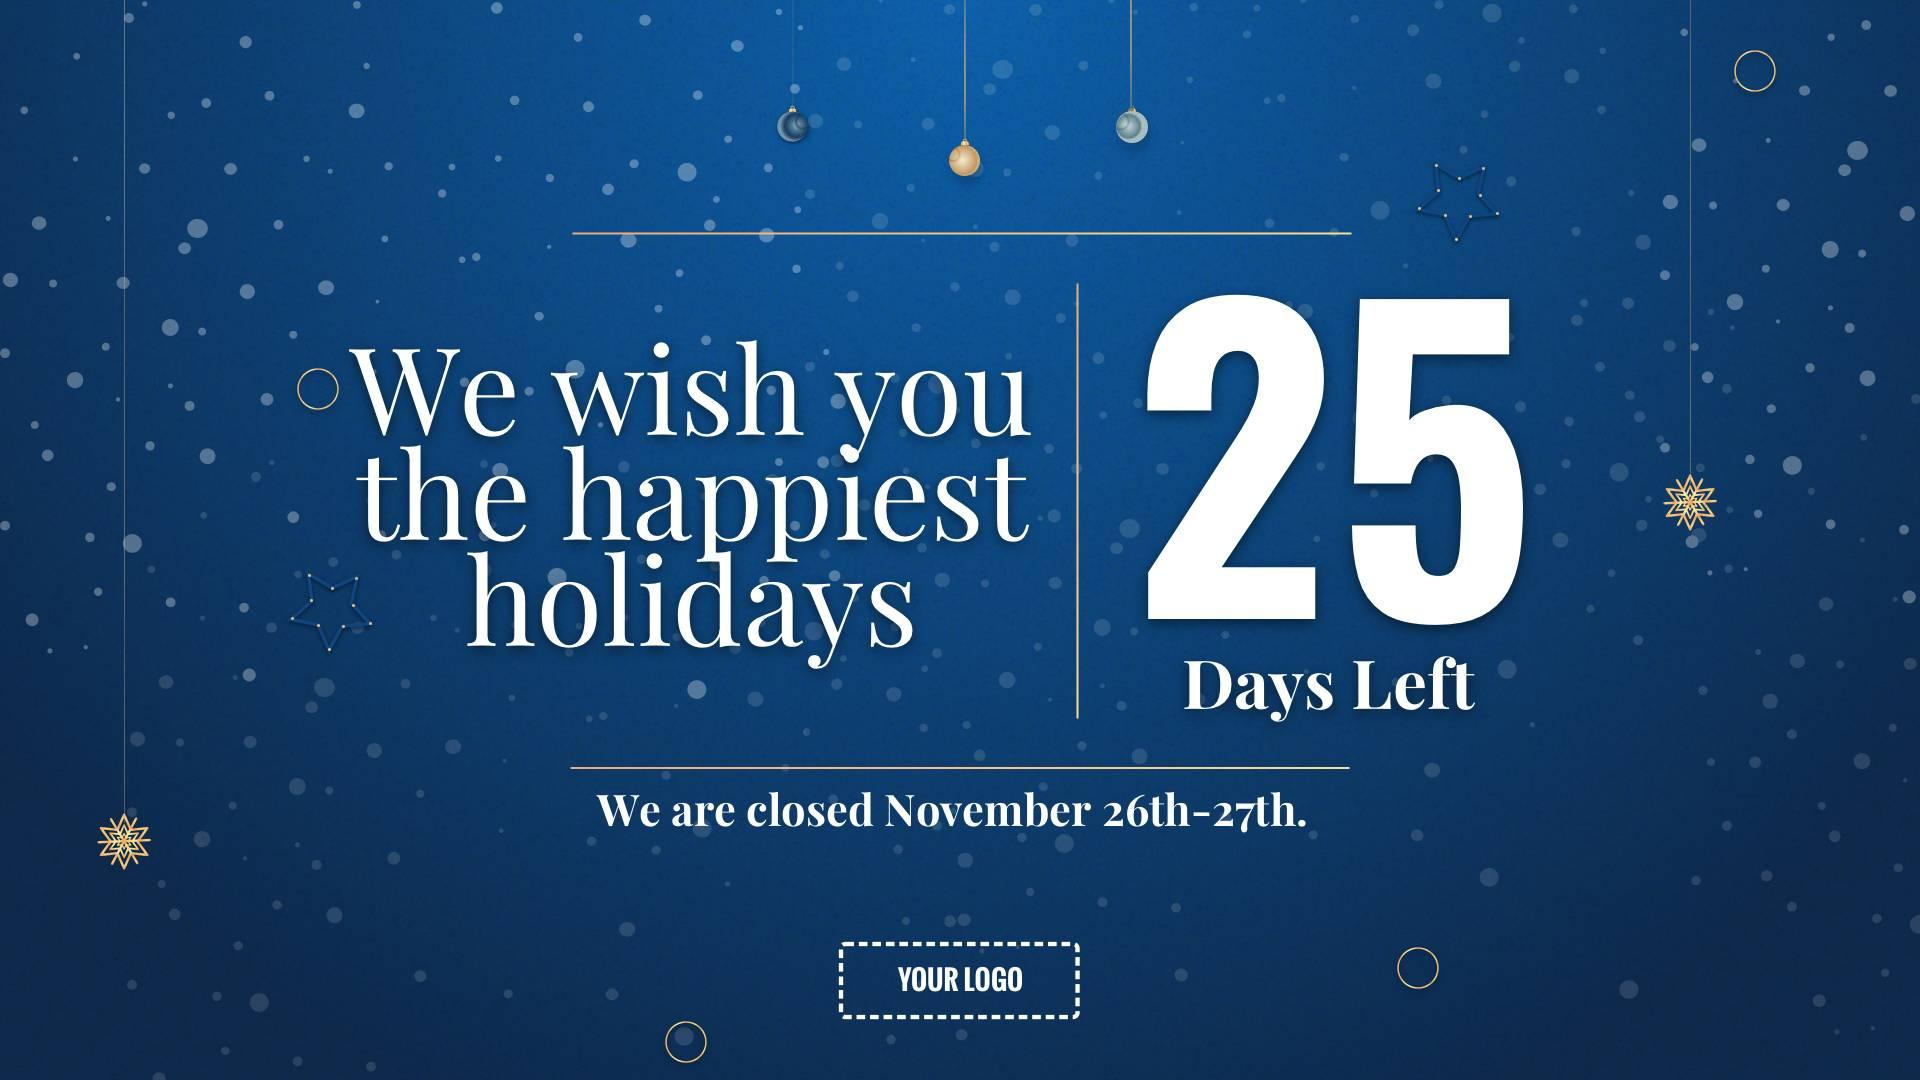 Holiday Countdown Digital Signage Template